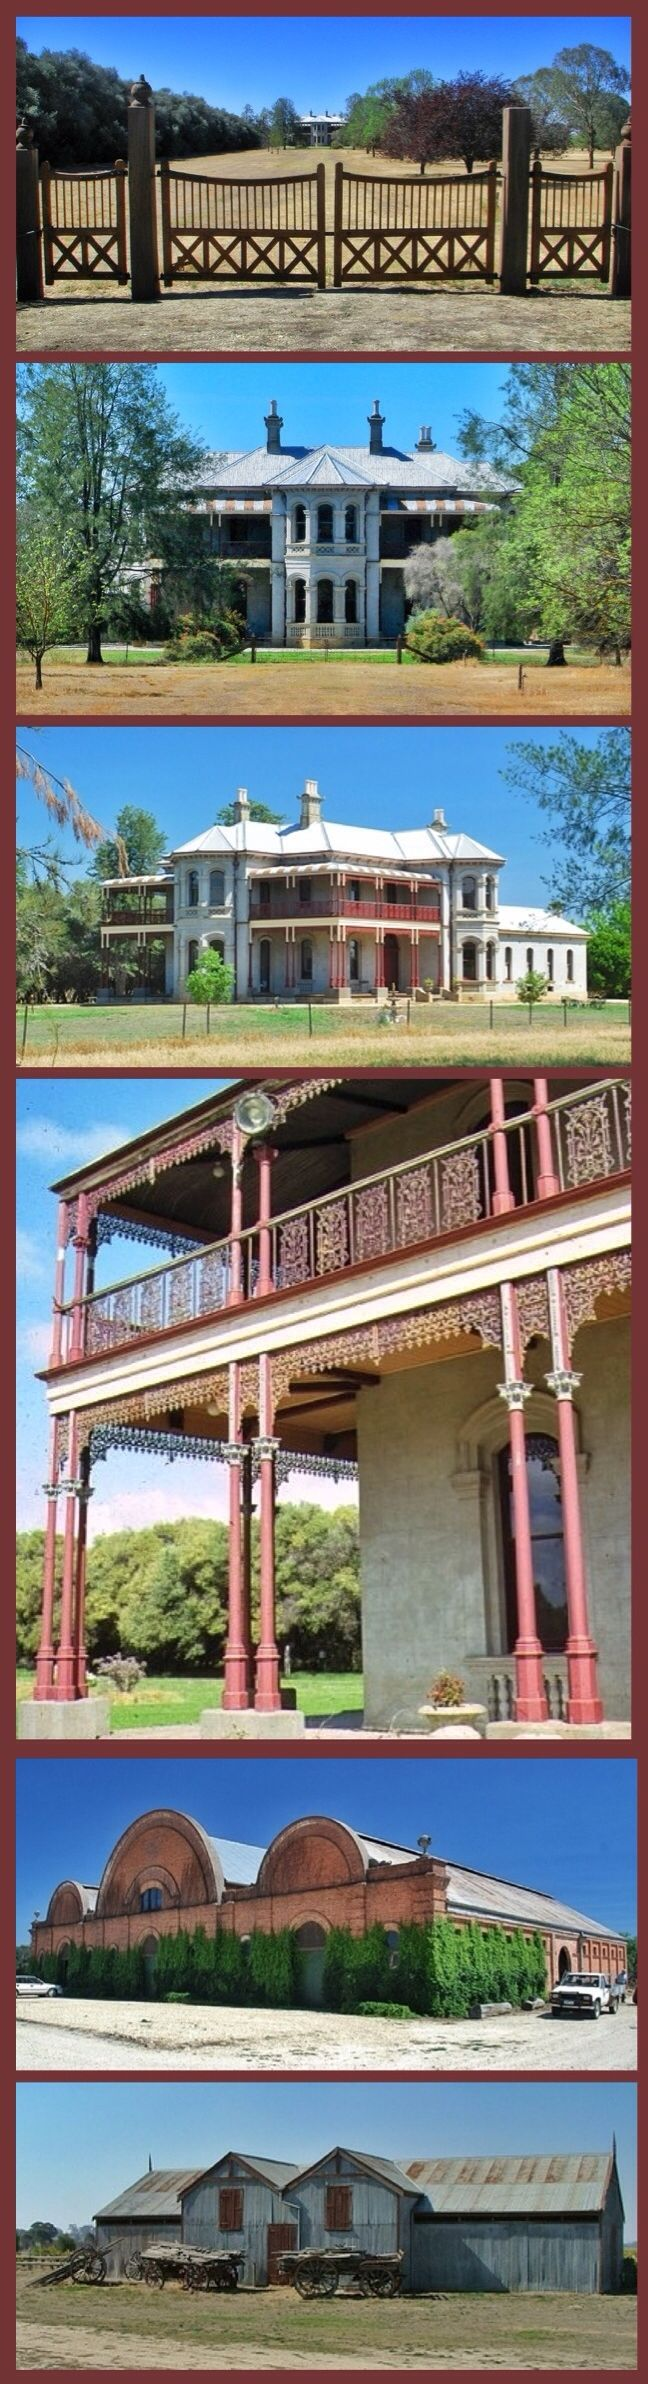 Fairfield Homestead, Browns Plains, is an Italianate mansion built in 1889 for vigneron George Francis Morris to the designs of architects Gordon and Gordon. A ballroom extension was added in c1896. Morris was one of the greatest of Victoria's nineteenth century vignerons; in 1904 his property, Fairfield, was described as the country's largest vineyard and winery complex, with 700 acres of vines, extensive cellars and a staff of over 100. Morris was the third son of a Bristol Draper and…